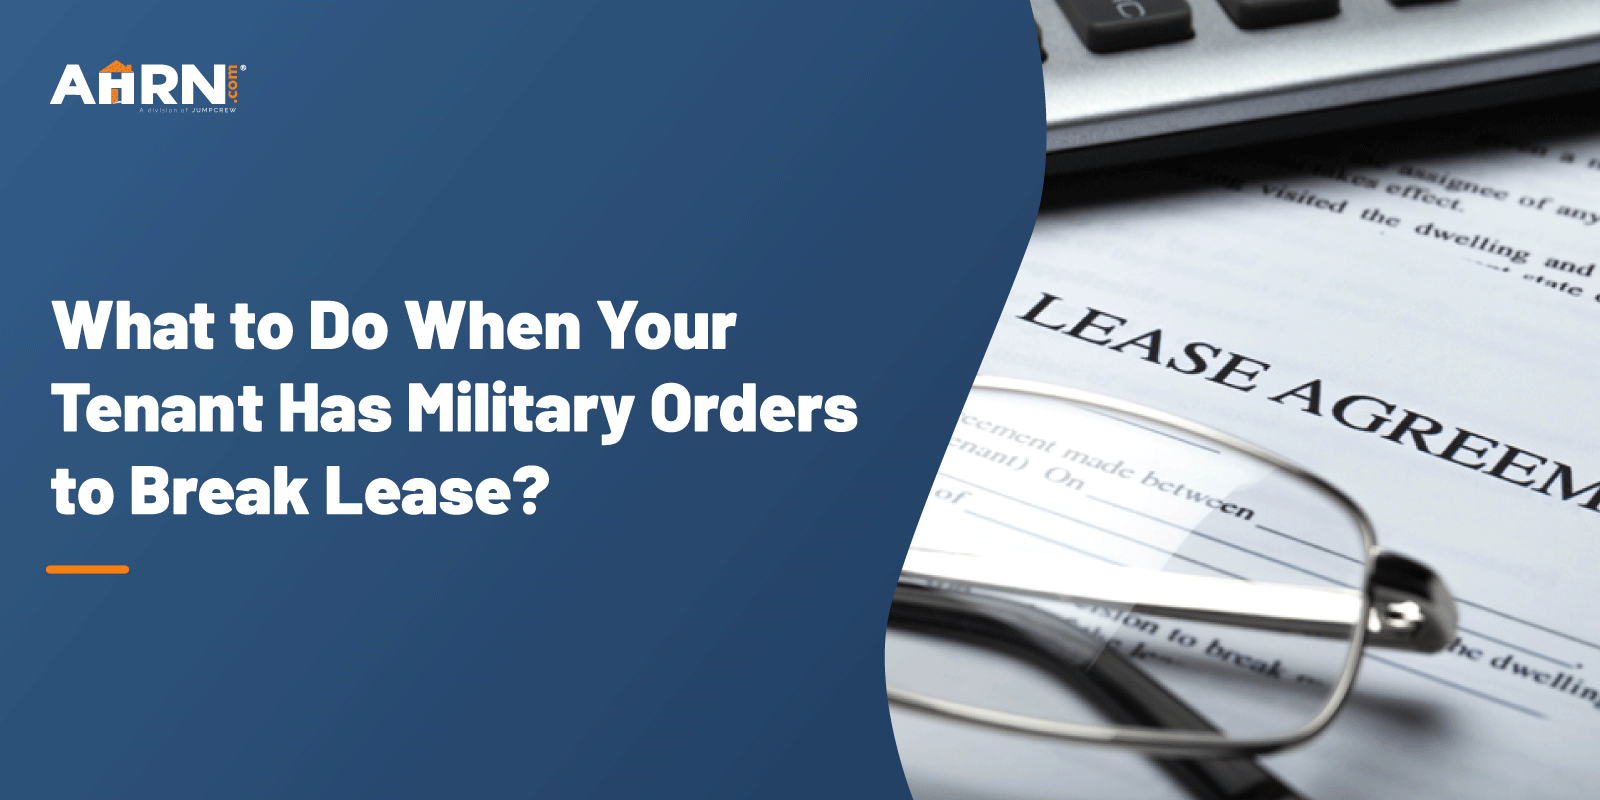 What to Do When Your Tenant Has Military Orders to Break Lease?